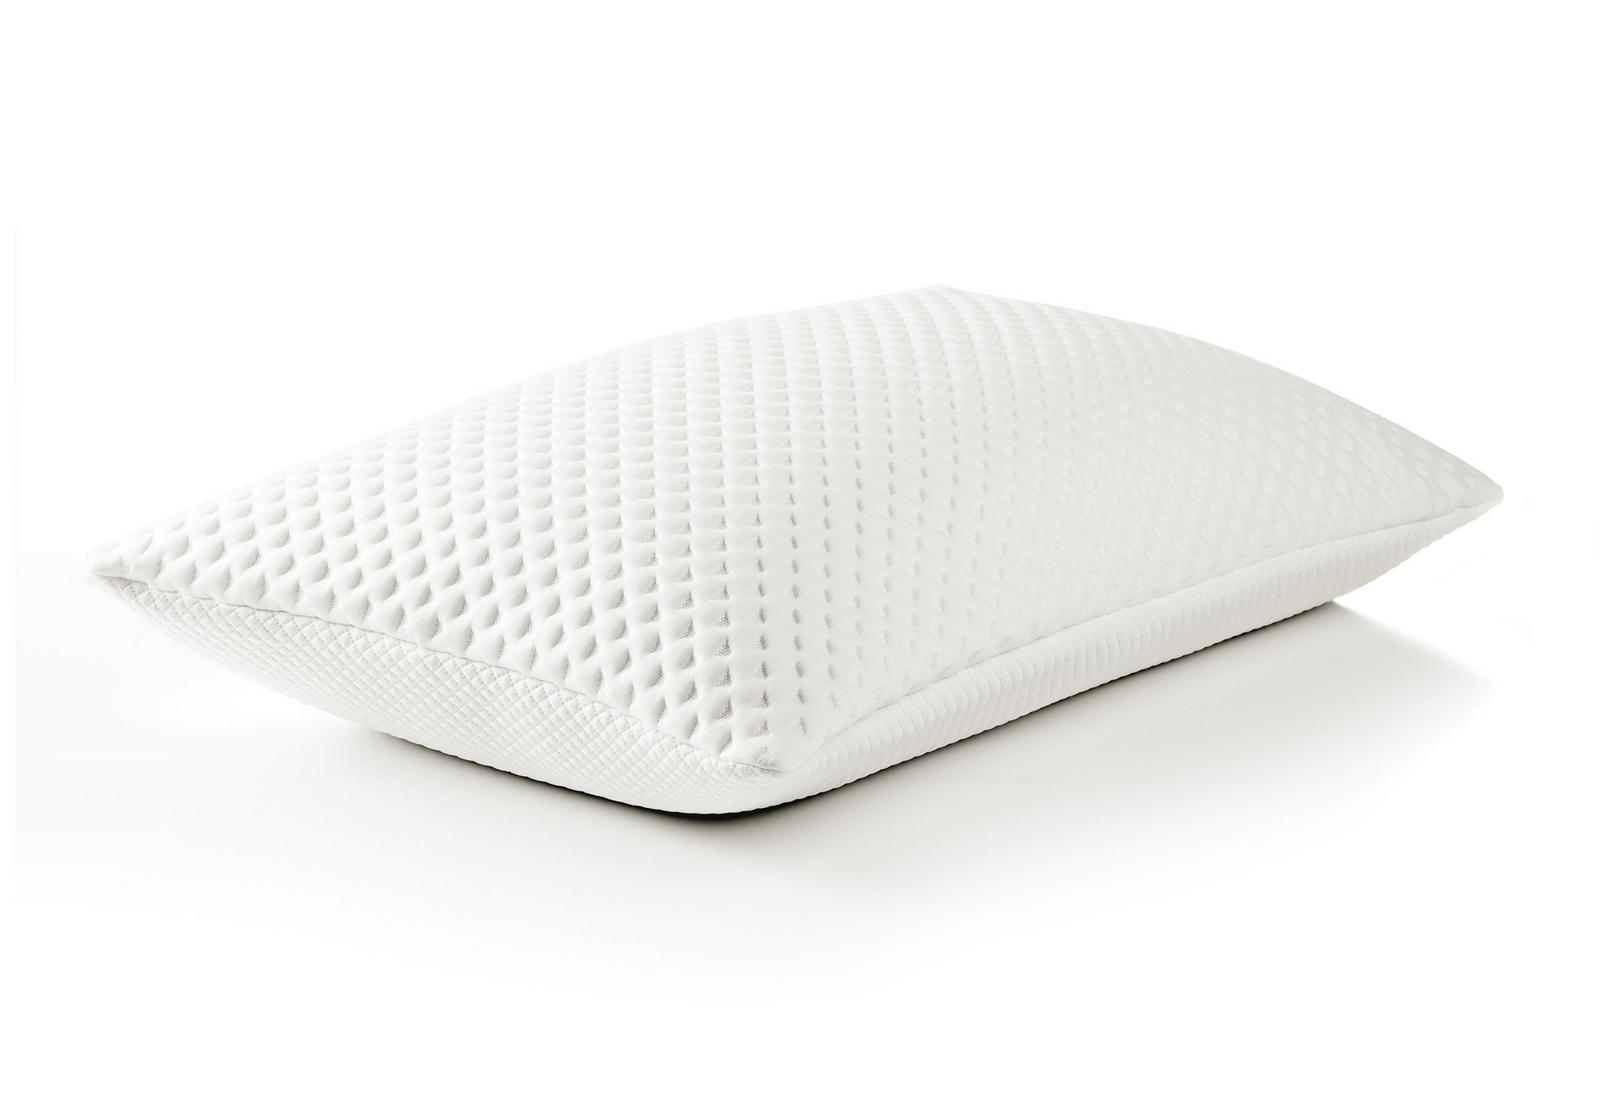 Up to 2 TEMPUR® Pillows